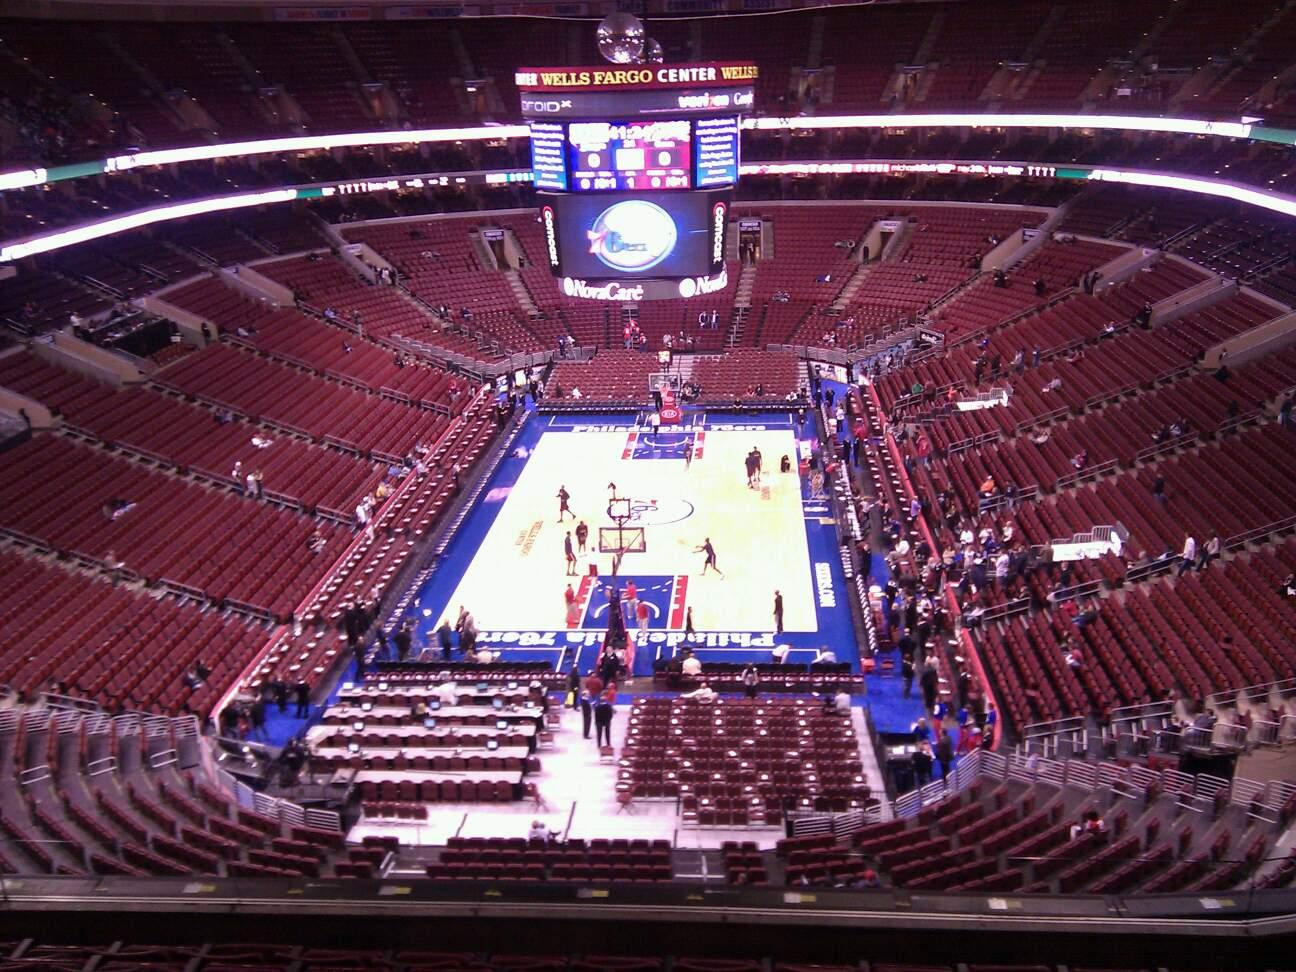 Wells Fargo Center Section 219a Row 8 Seat 10